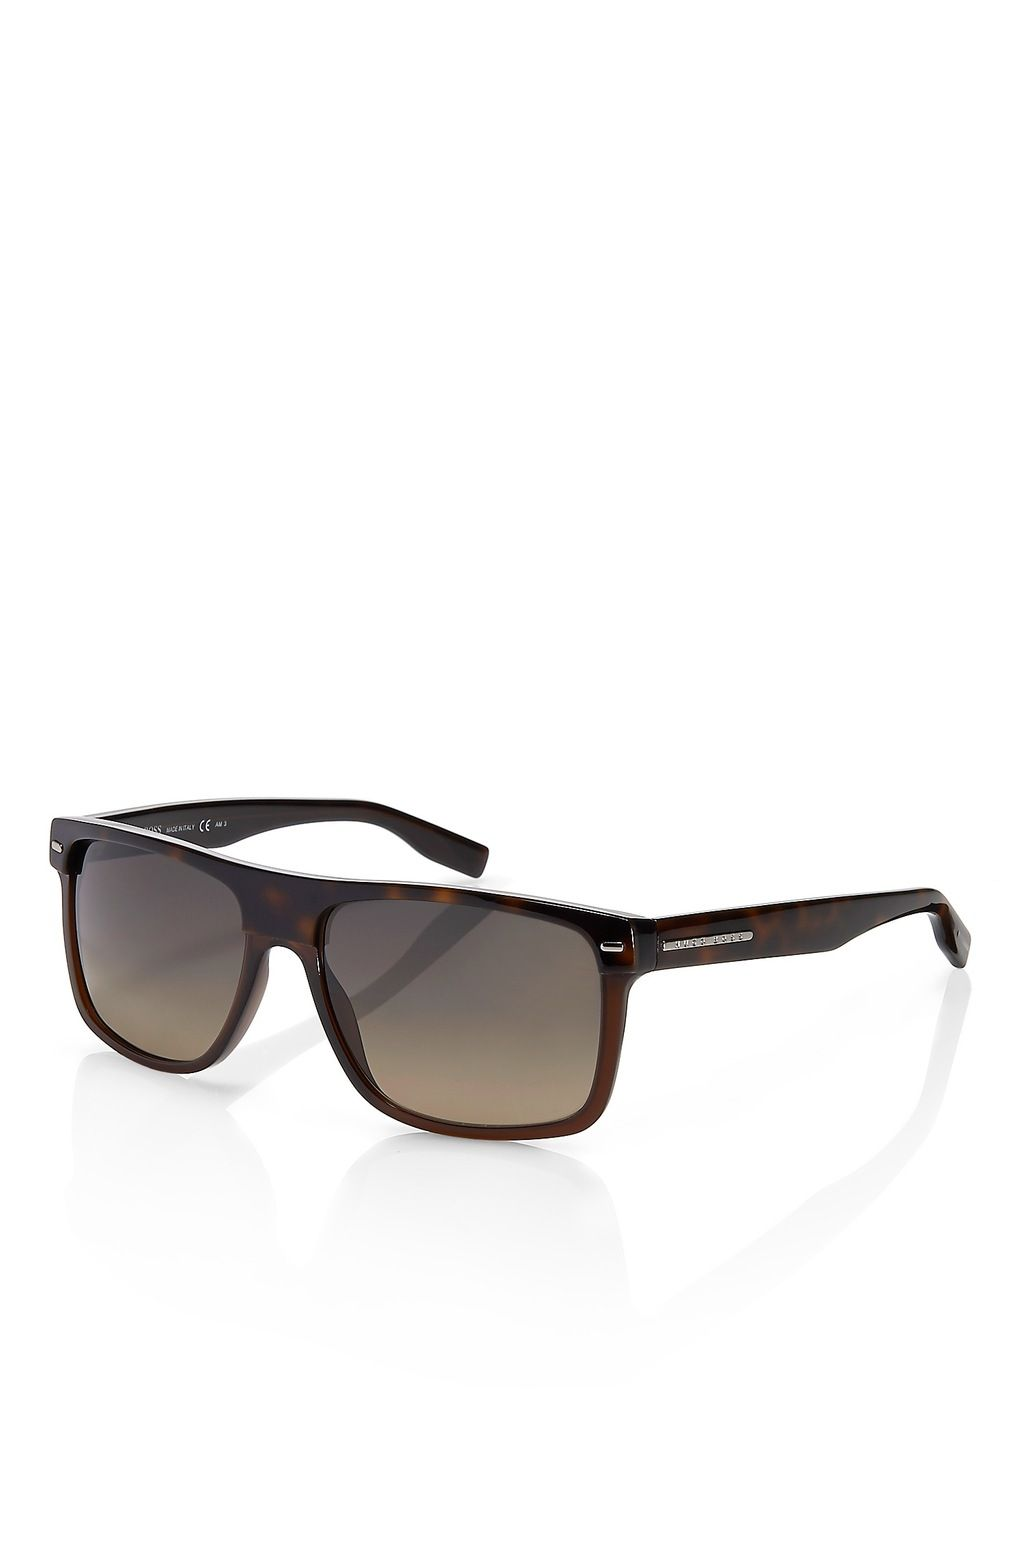 e835aa759b Hugo Boss - Men s Sunglasses http   calgaryeyecare.com index.php